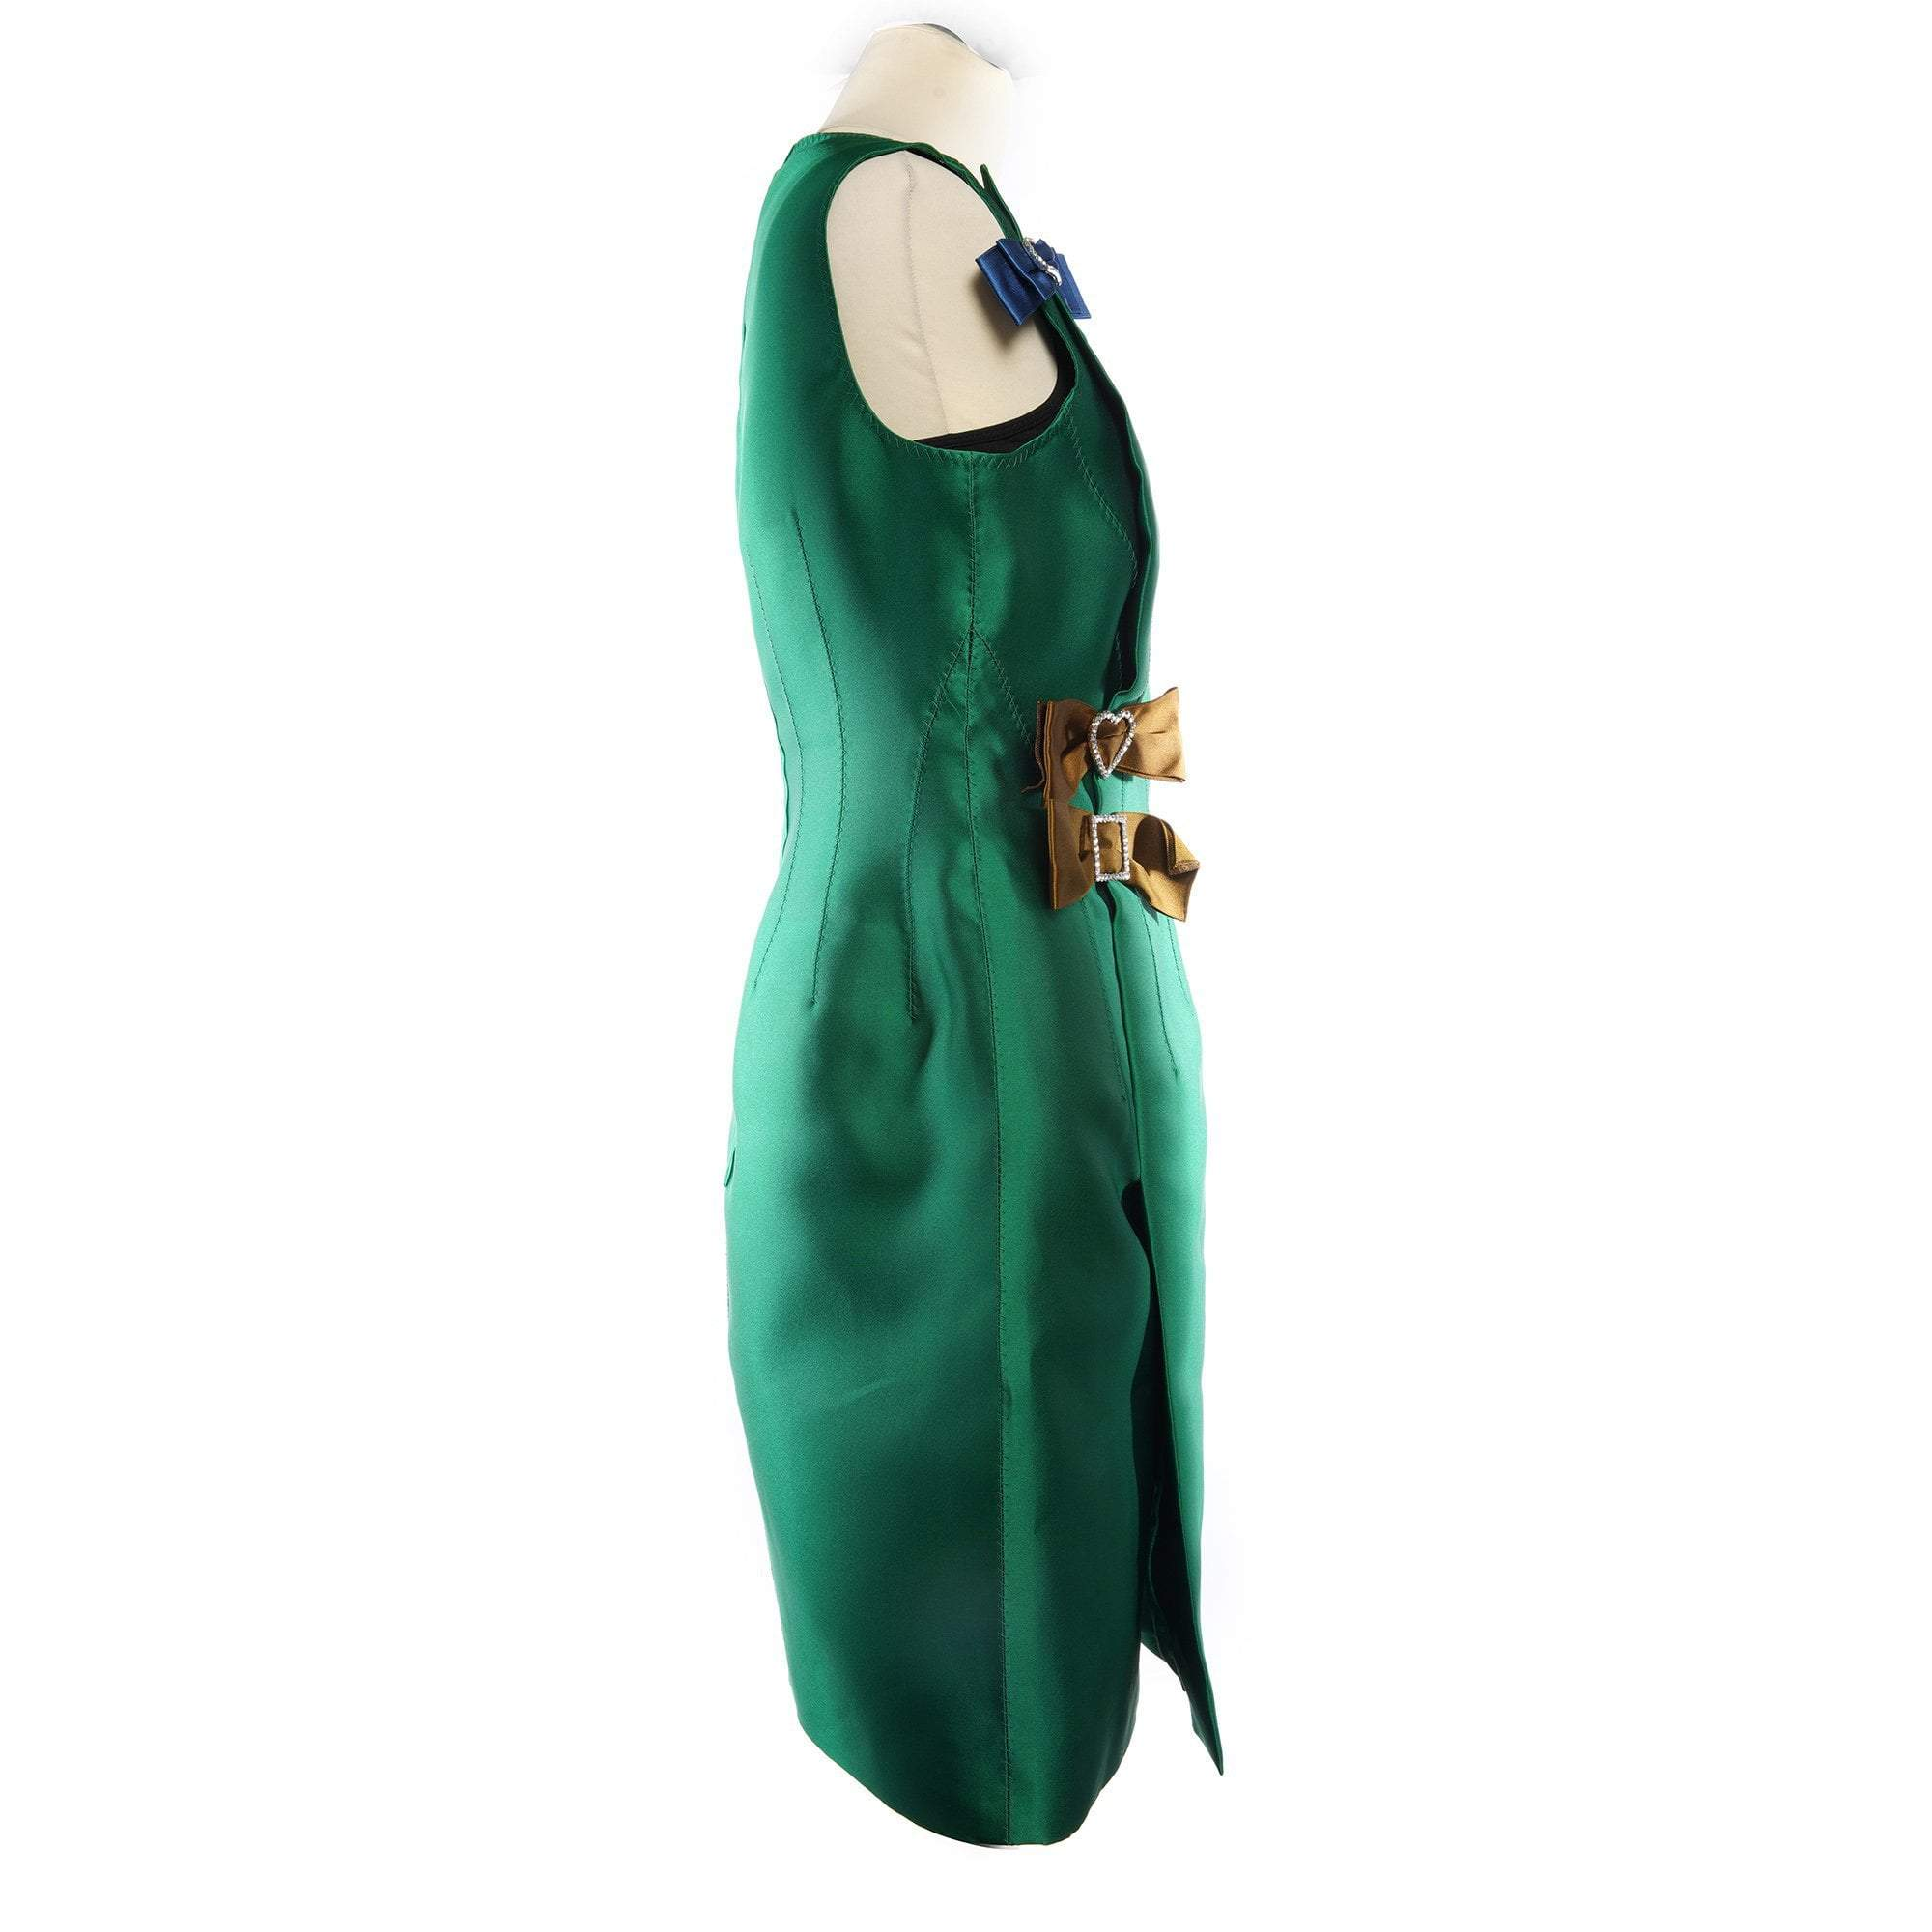 Lanvin Green Sleeveless Dress w Bow Detail